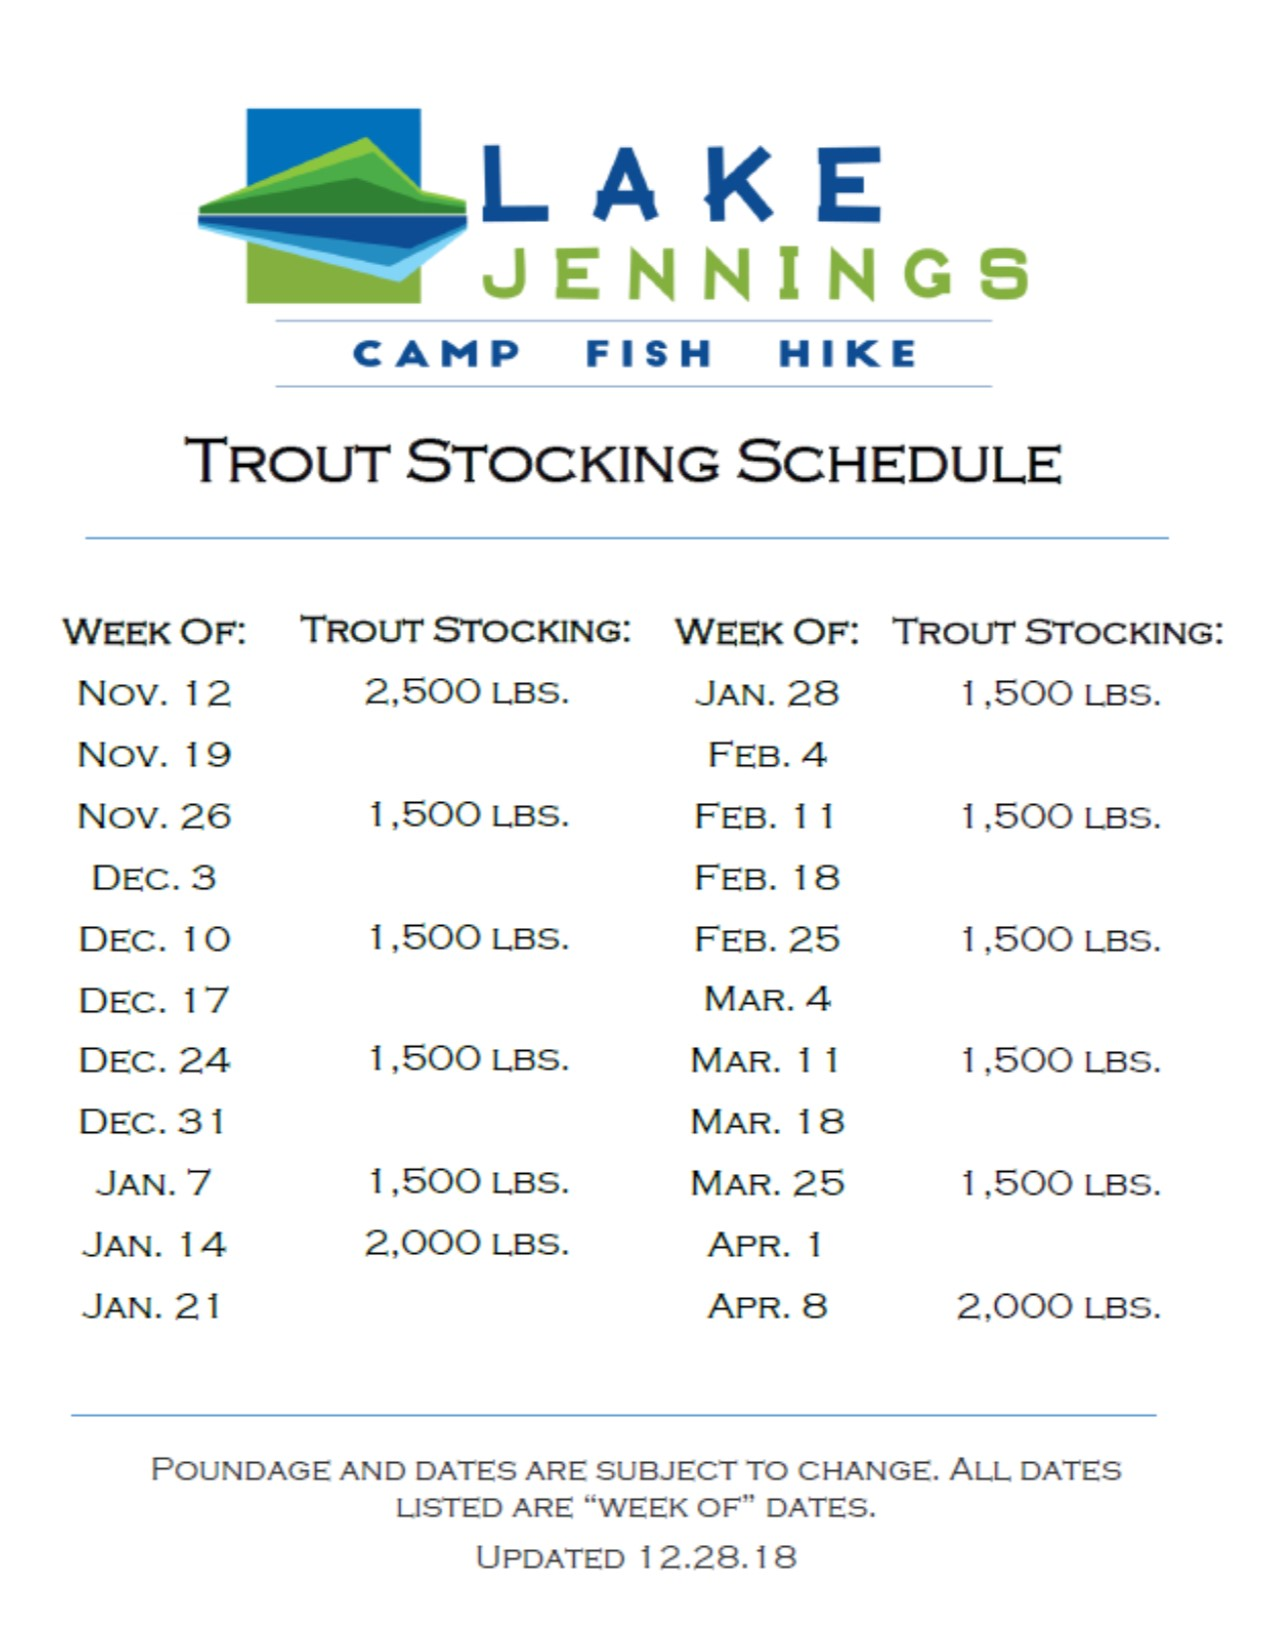 Trout Stocking Week 1,500 lbs  » Lake Jennings